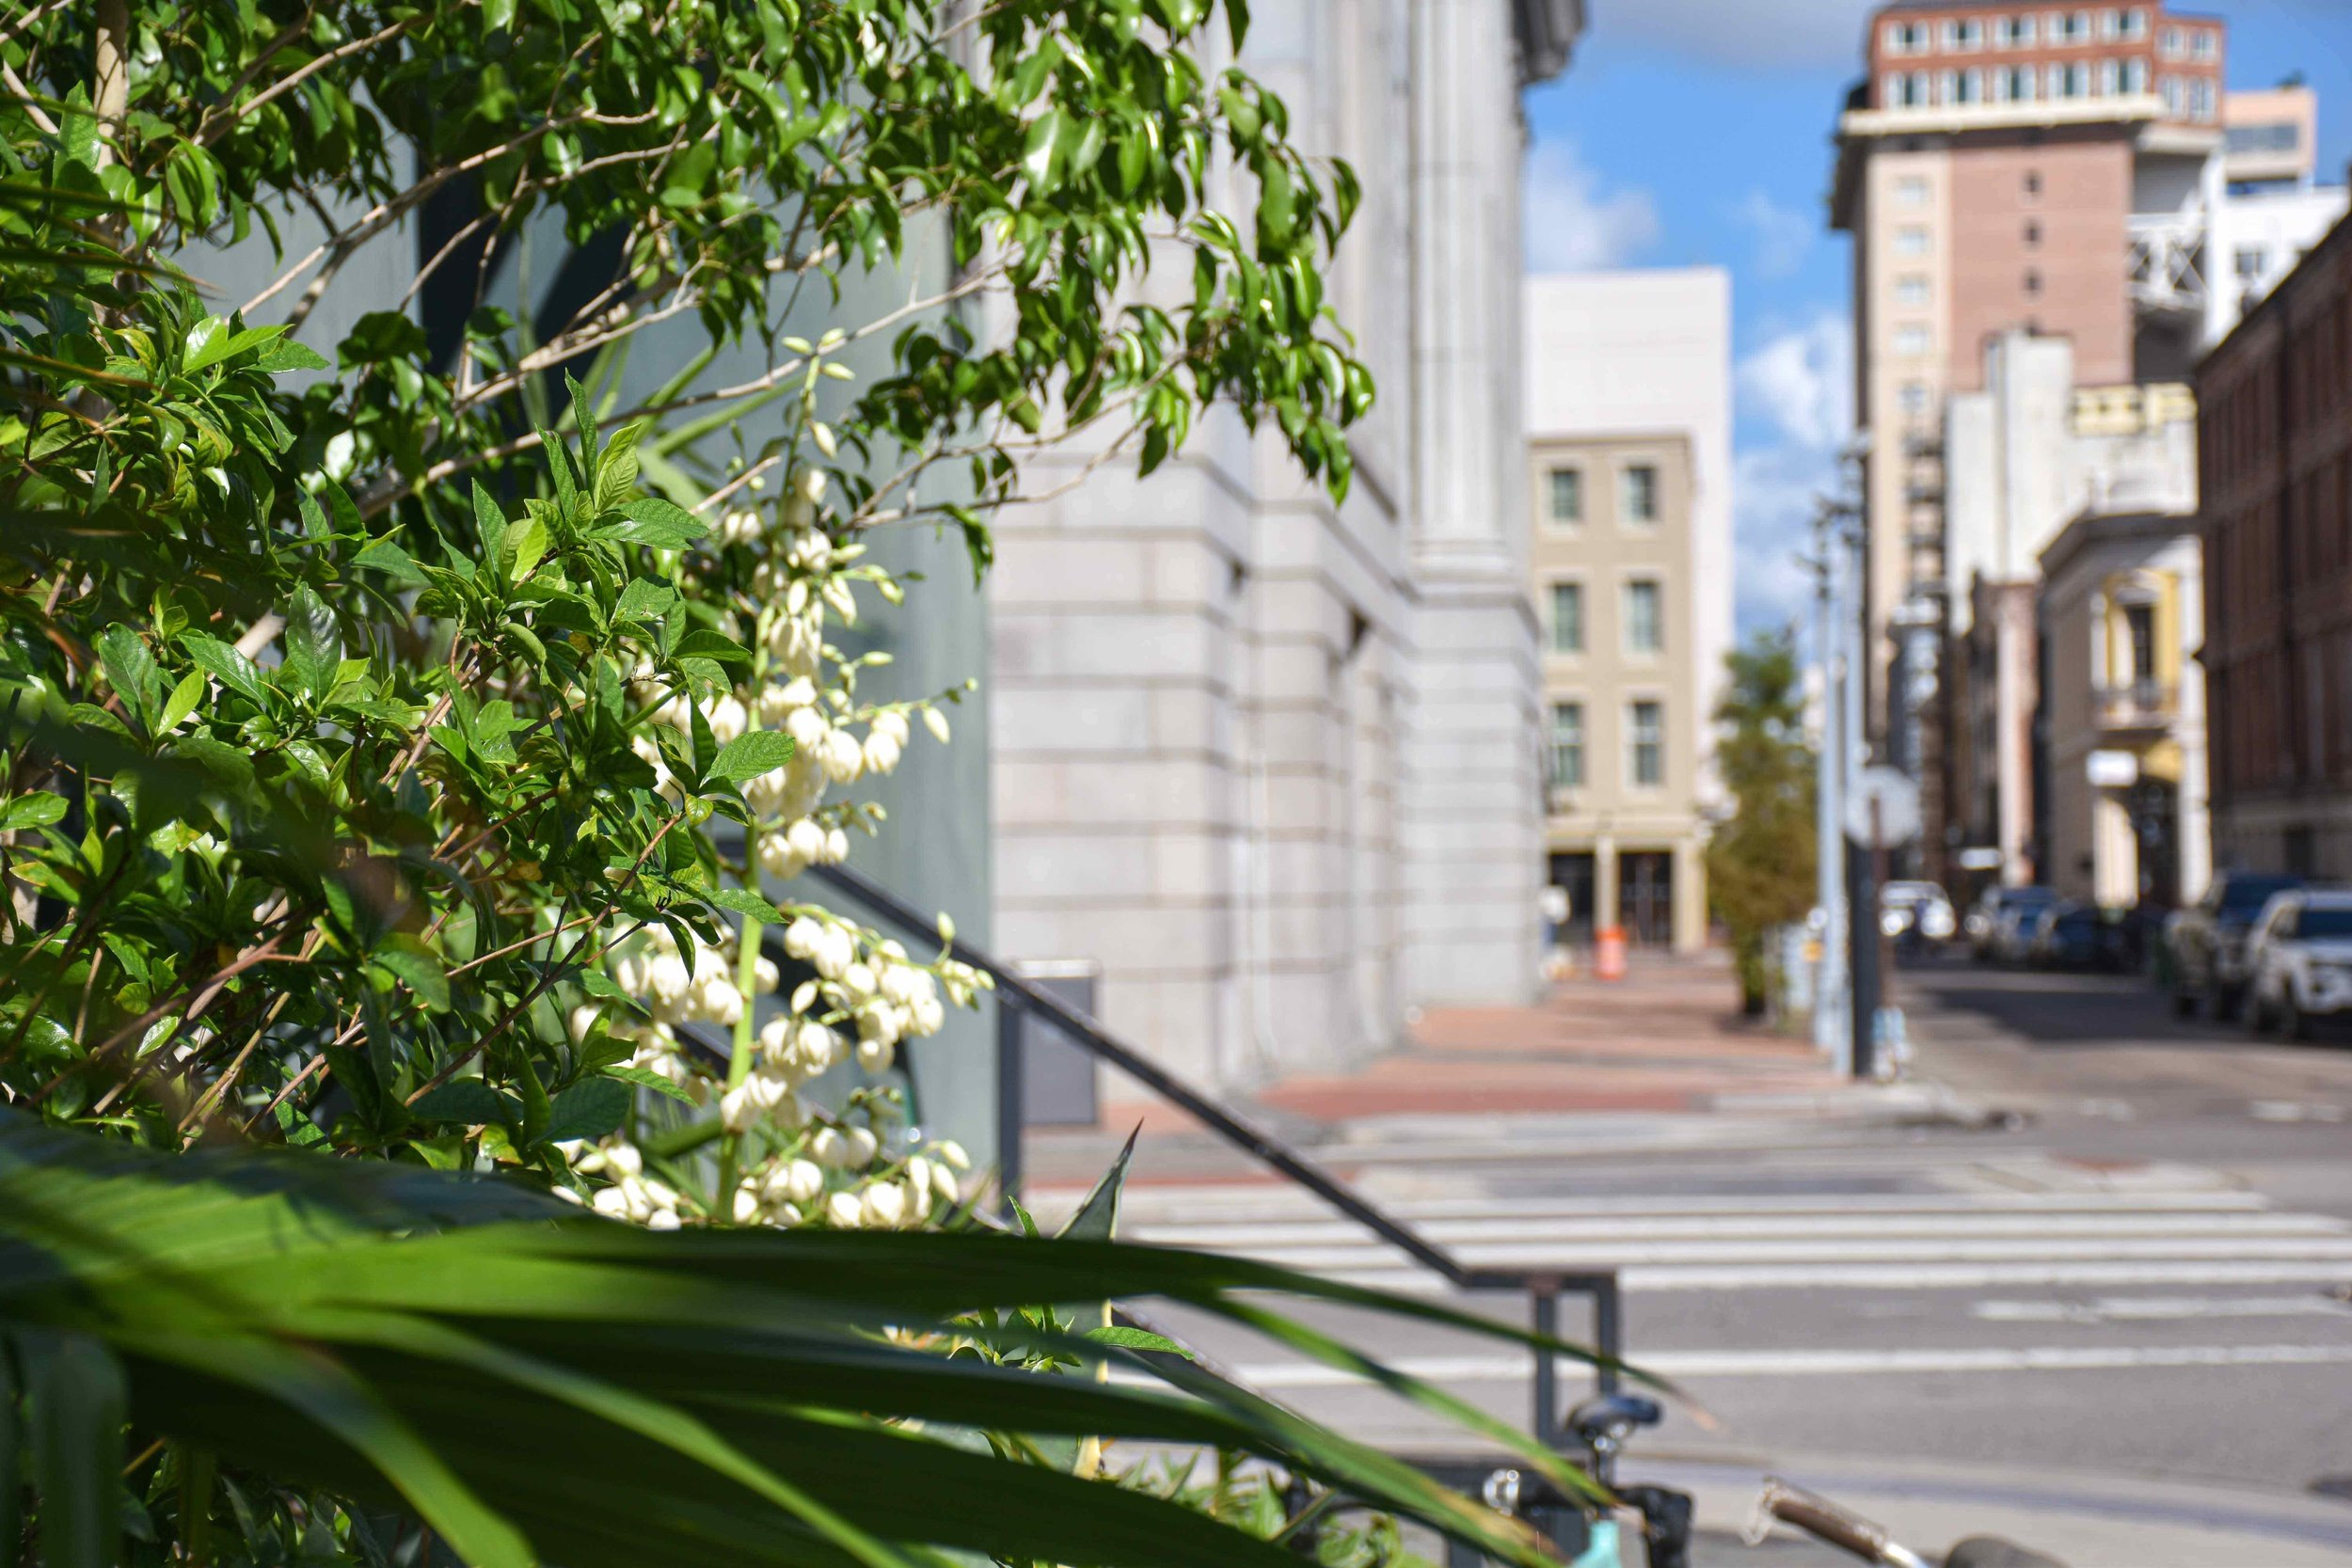 Canal Iberville FQ  Agave bloom.jpg